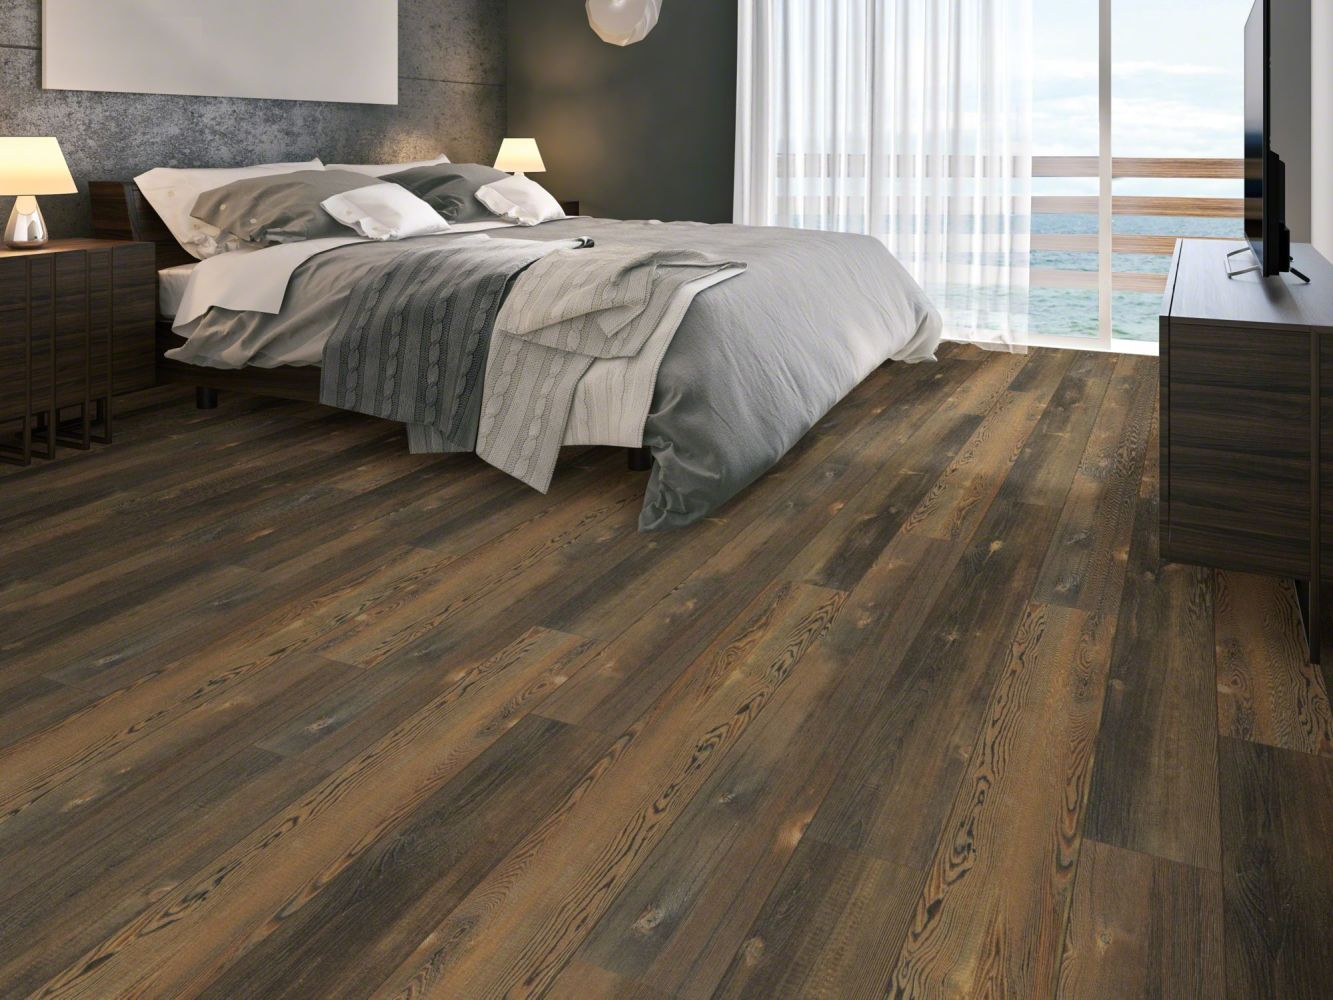 Shaw Floors Resilient Property Solutions Southern Pine 720c Plus Forest Pine 00812_513RG